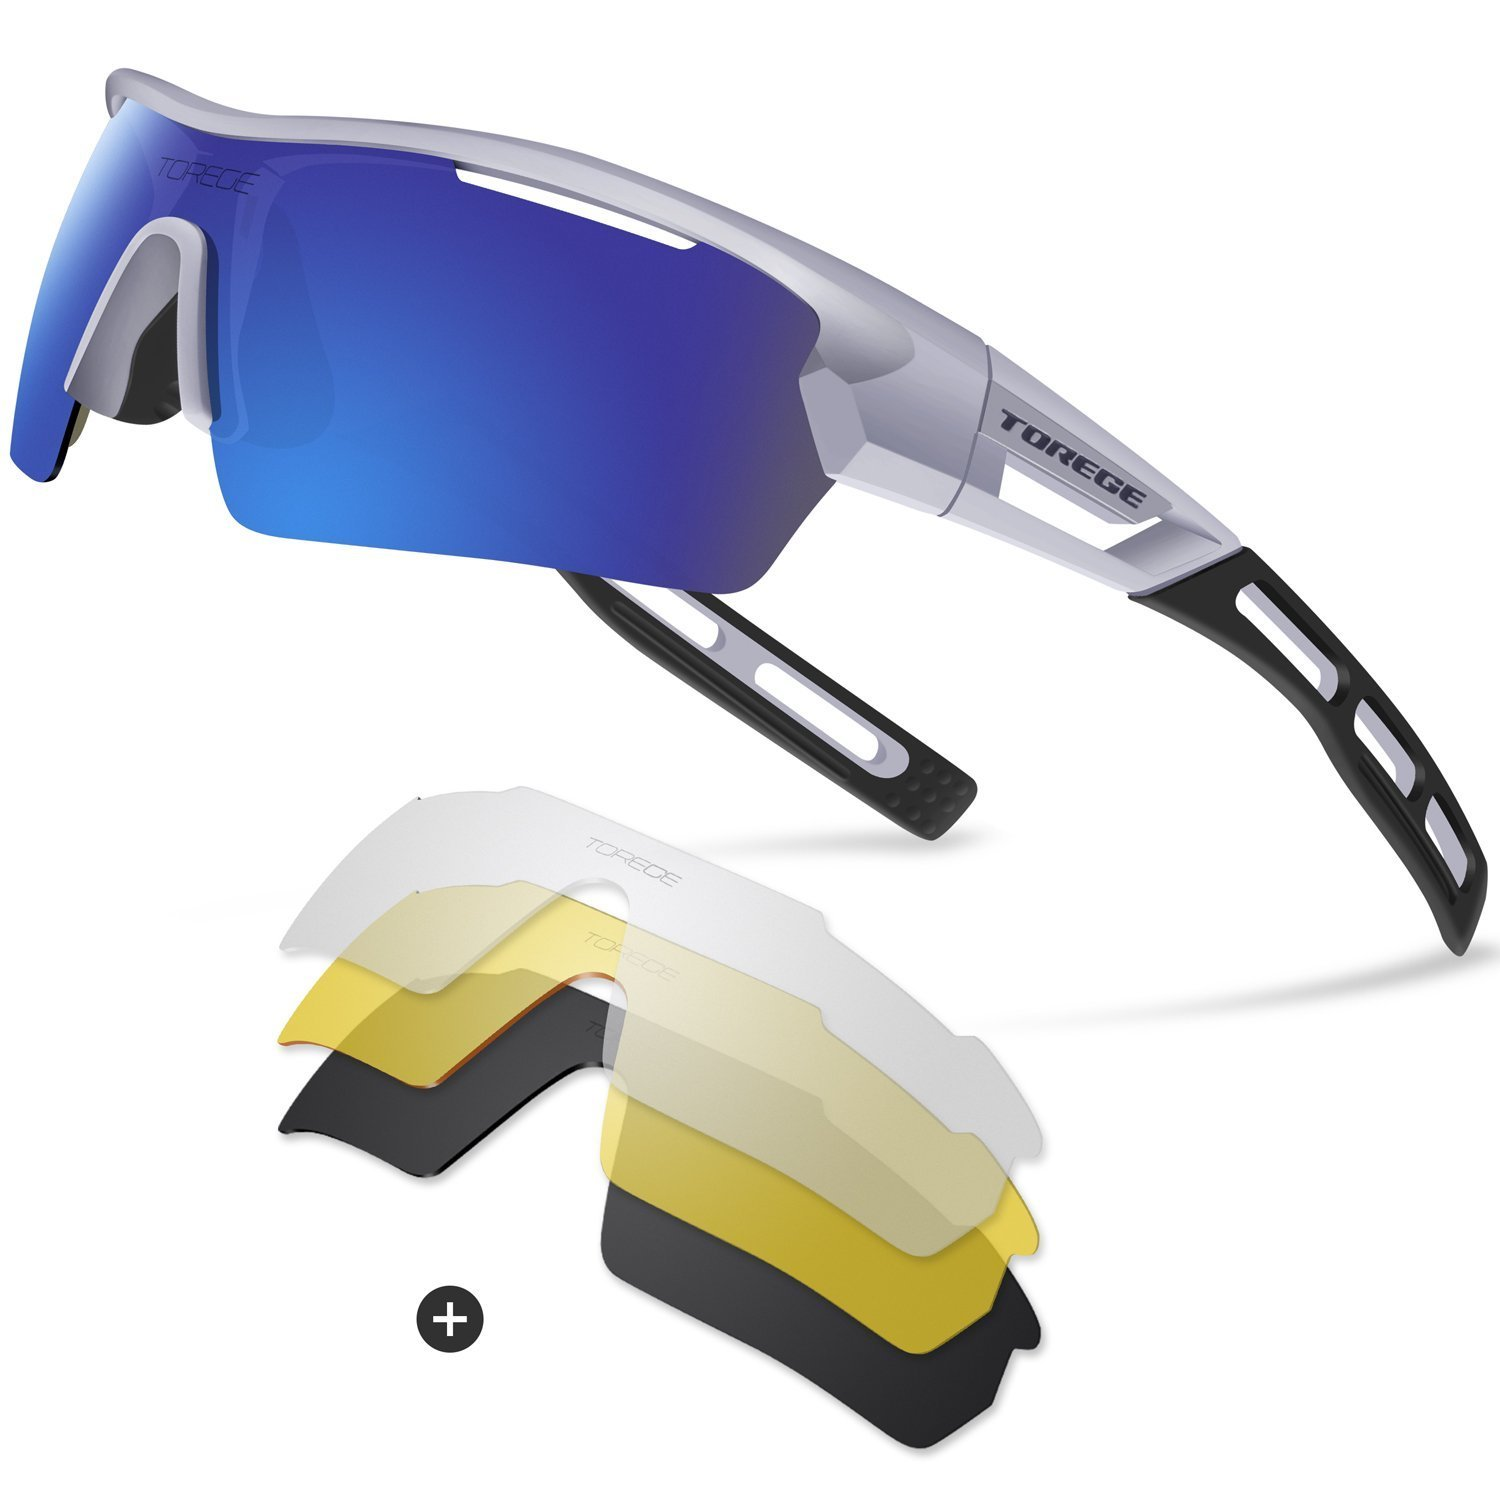 Torege Polarized Sports Sunglasses for Men Women Cycling Running Driving TR033 (Sliver&Black&Blue) by TOREGE